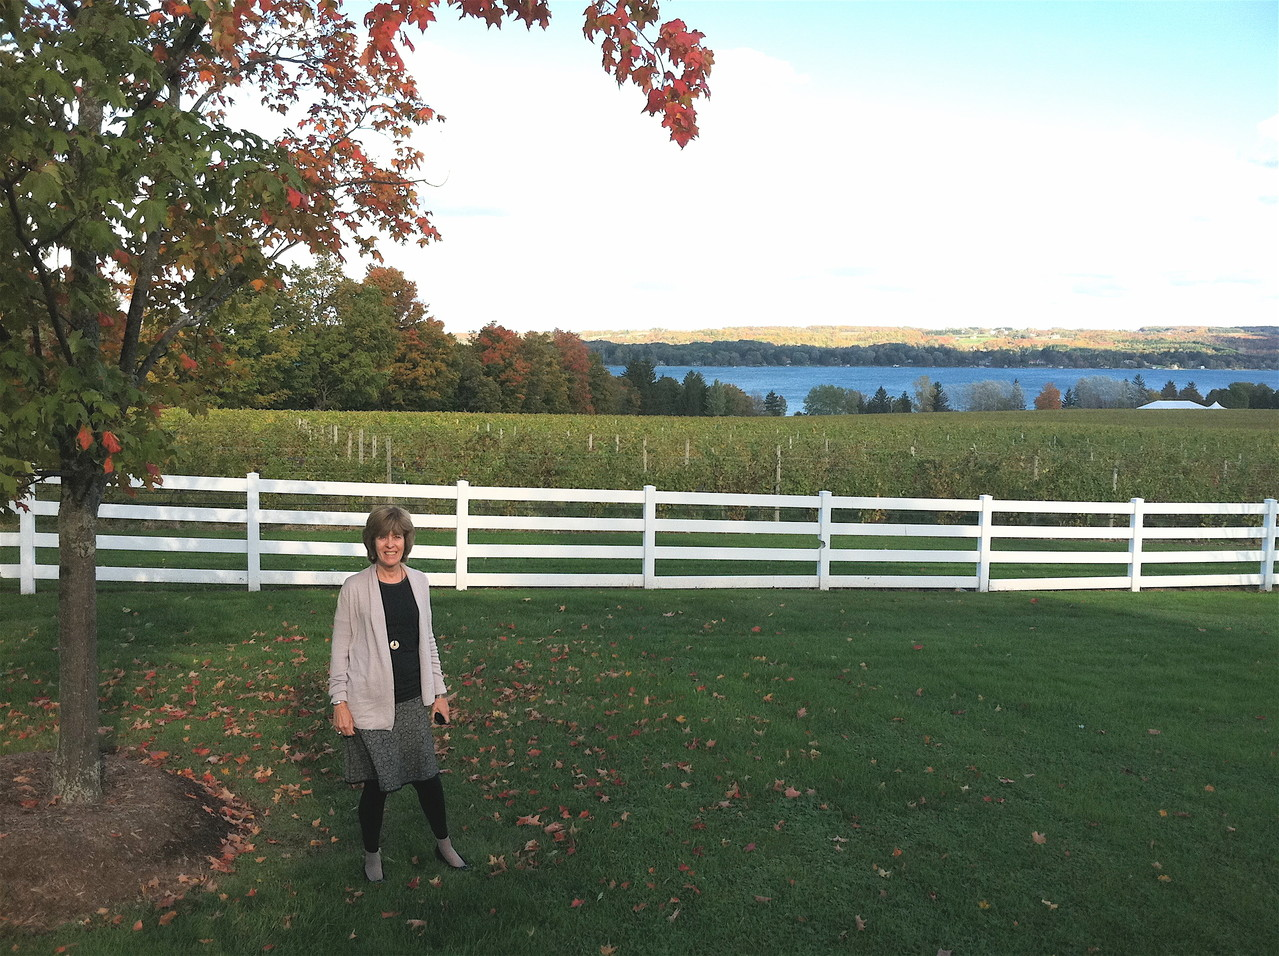 Nancy at Skanteateles Lake, Oct. 6, 2012